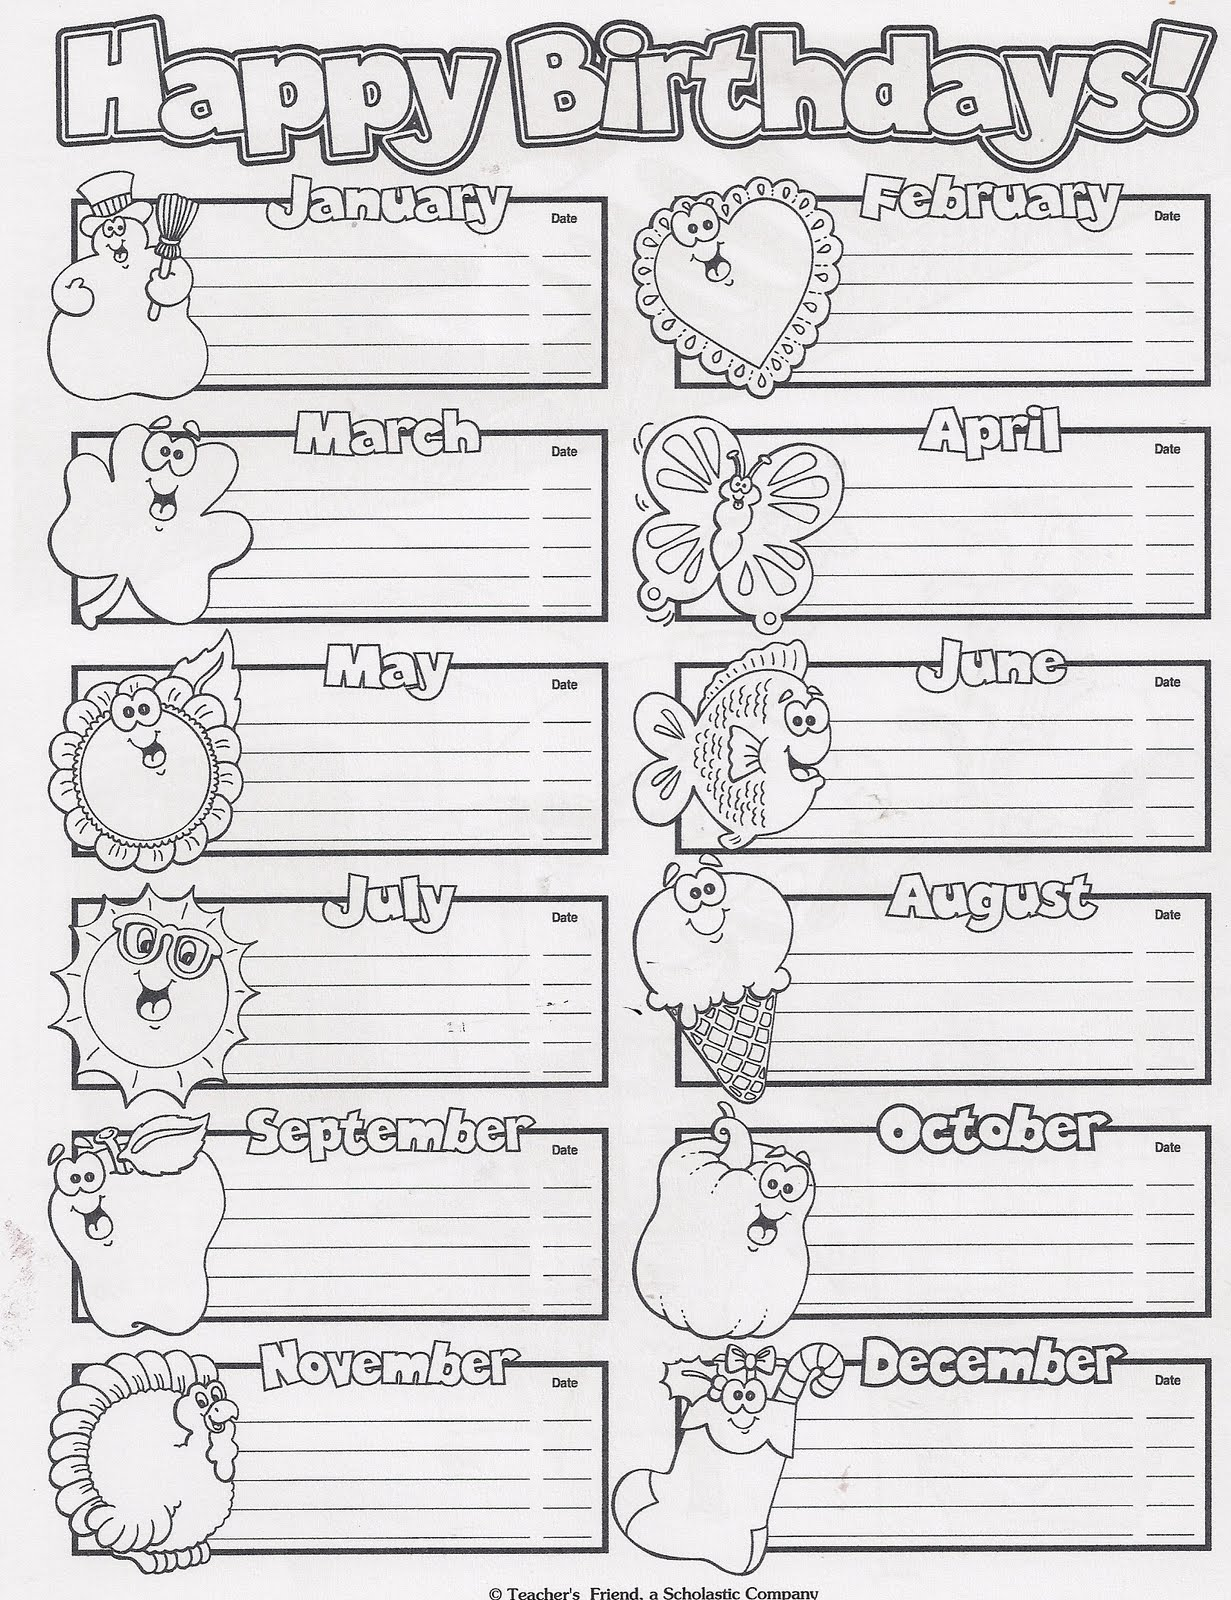 birthday chart learningenglish esl. Black Bedroom Furniture Sets. Home Design Ideas